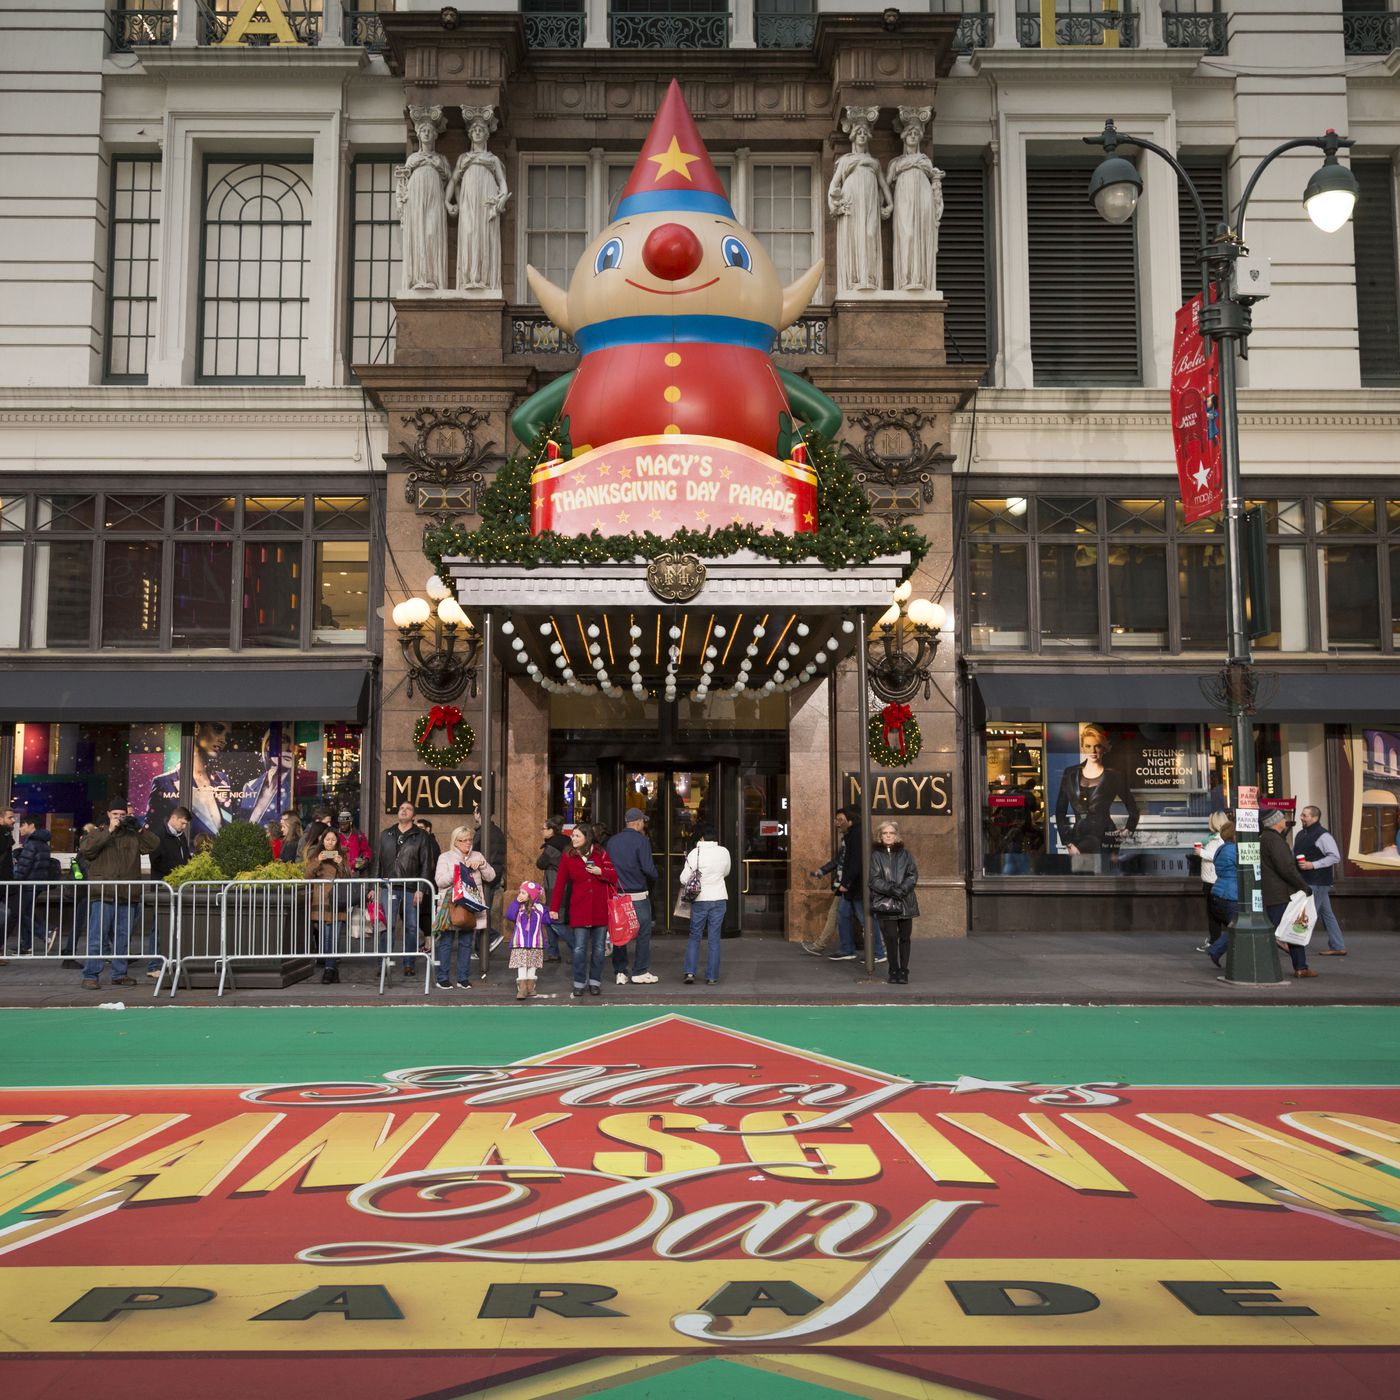 Macy's Thanks Day Parade 2018 live stream: How to ... on macy's nyc map, macy's app, macy's store, macy's restaurant nyc, macy's floor plan, macy's kitchen islands, the metropolitan museum of art map, macy's layout, hell's kitchen map, macy's new york, macy's department map, macy's hours, macy's icon, macy's furniture gallery, micello indoor map, st. patrick's cathedral map, macy parade map, macy's manhattan map, macy's floor map, john f. kennedy international airport map,